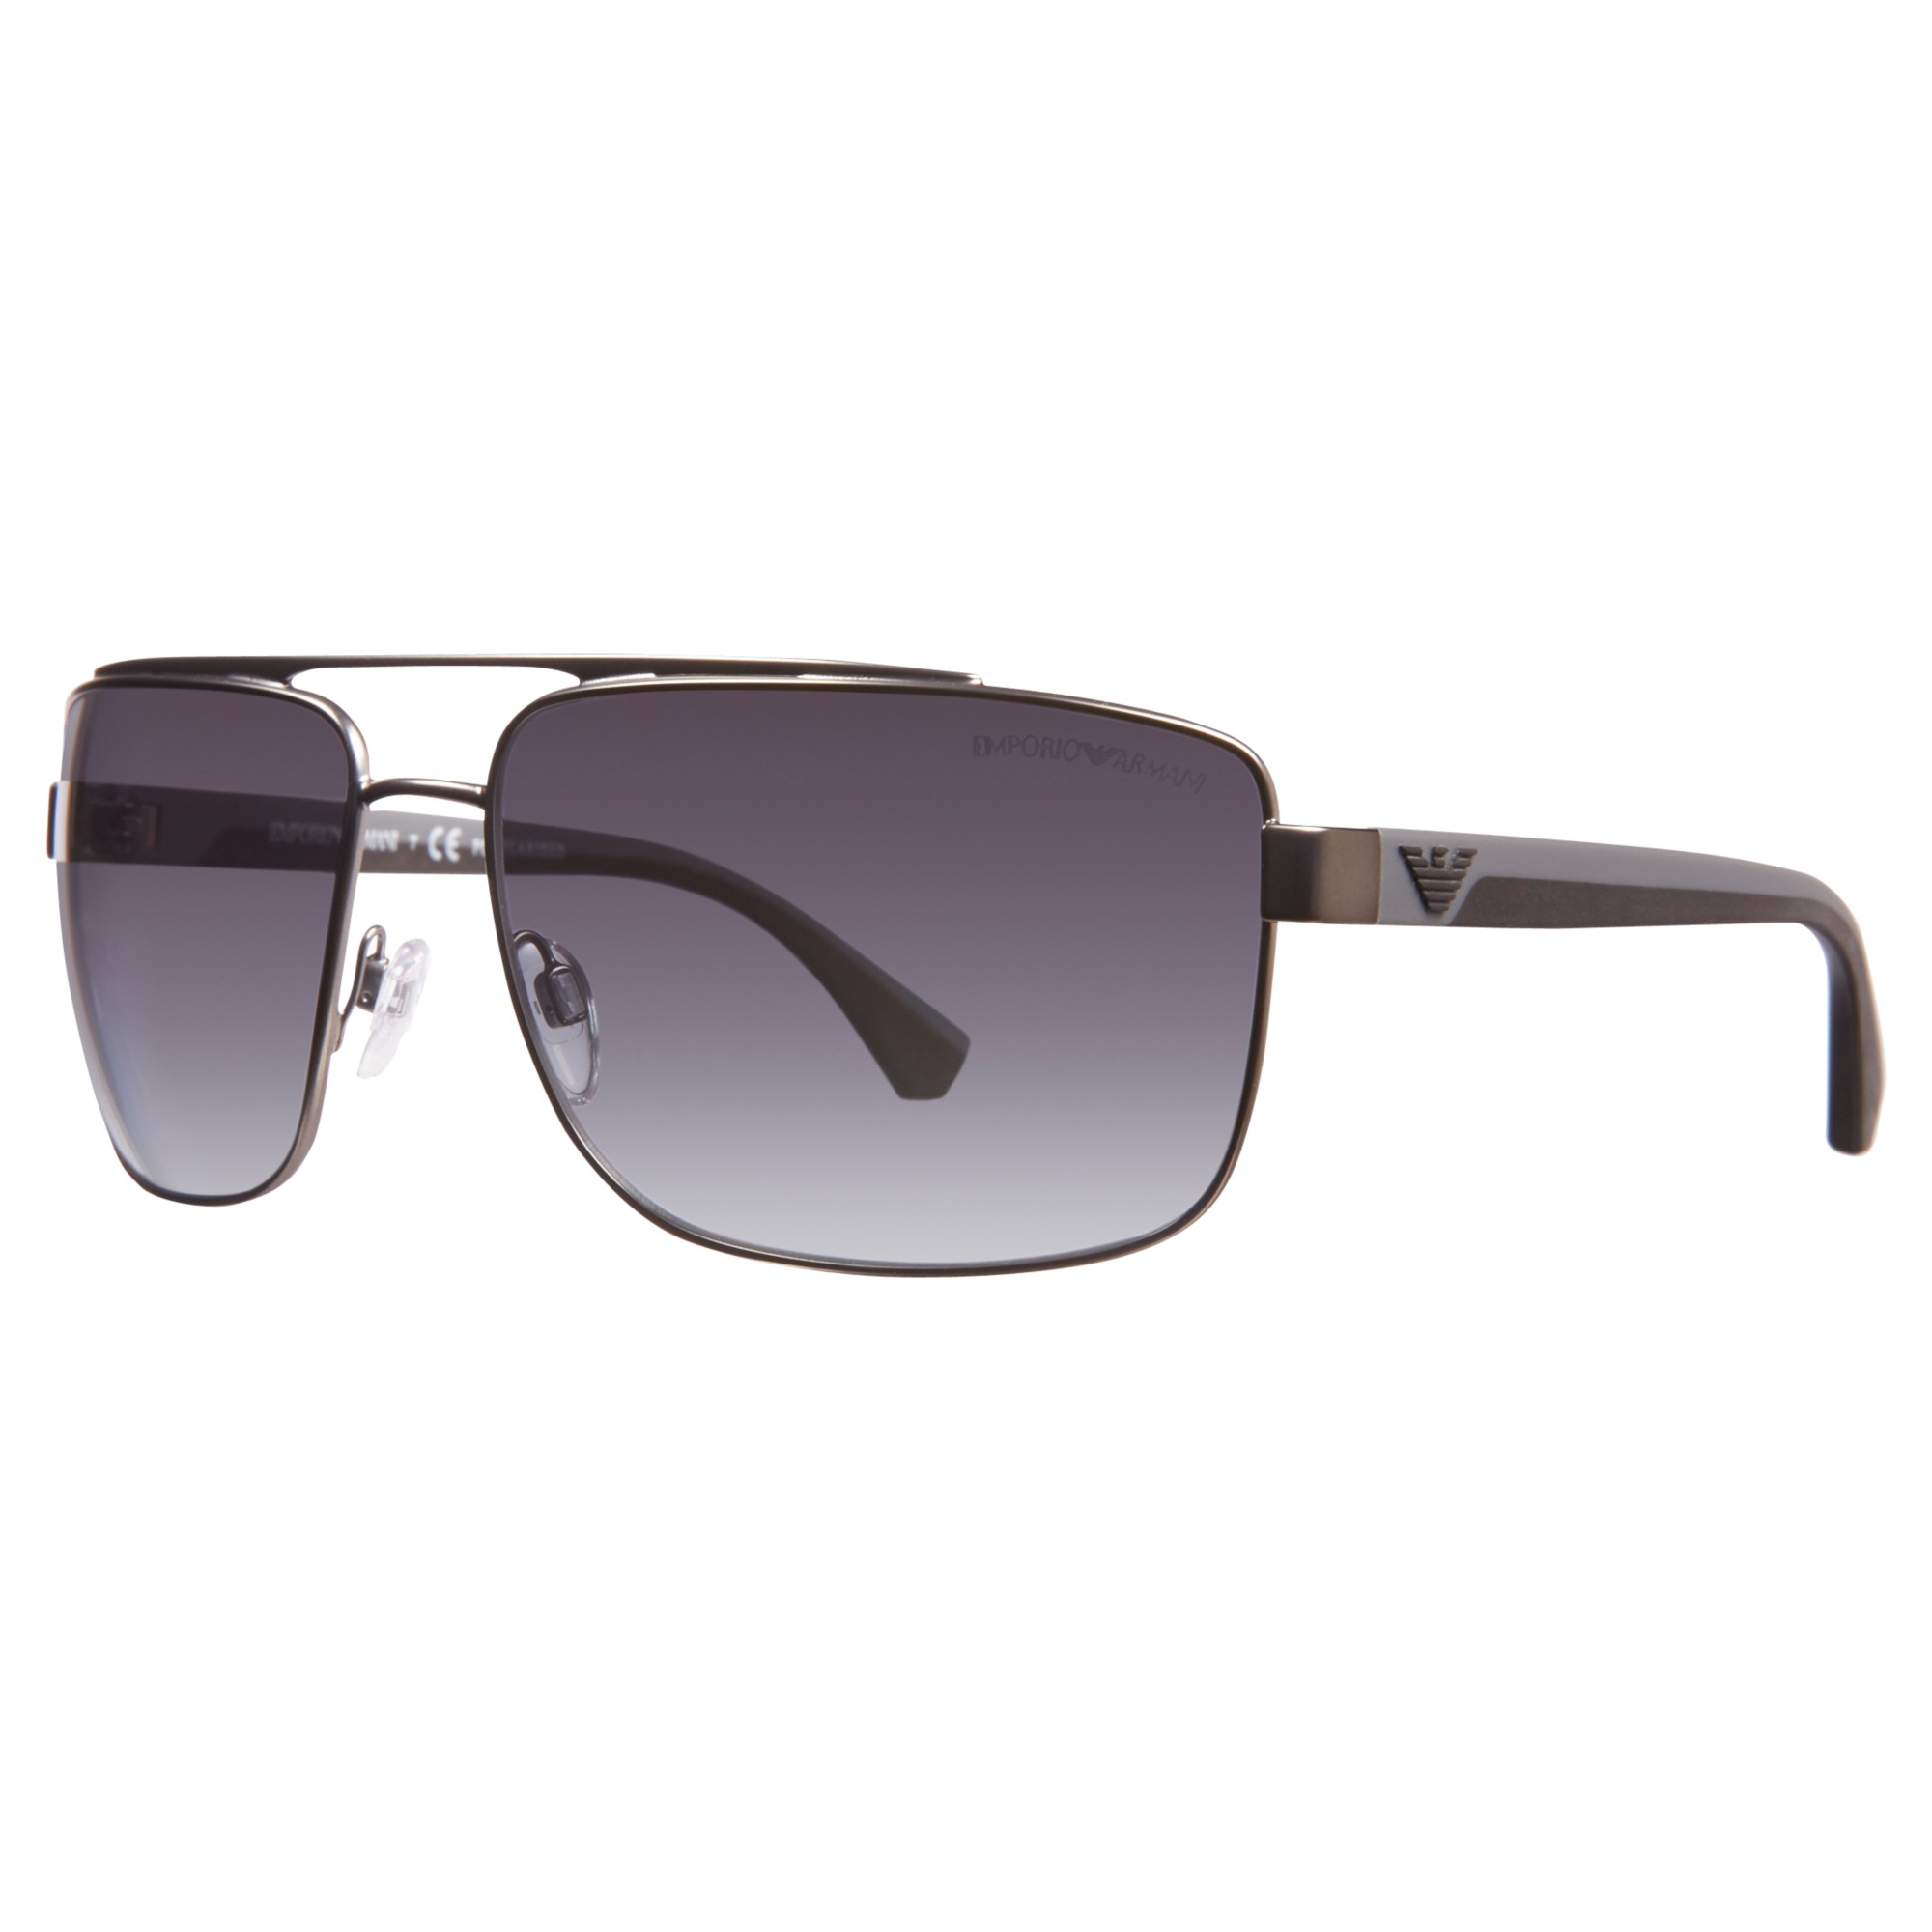 251f84d18dd Emporio Armani Ea2018 Rectangular Sunglasses in Metallic - Lyst